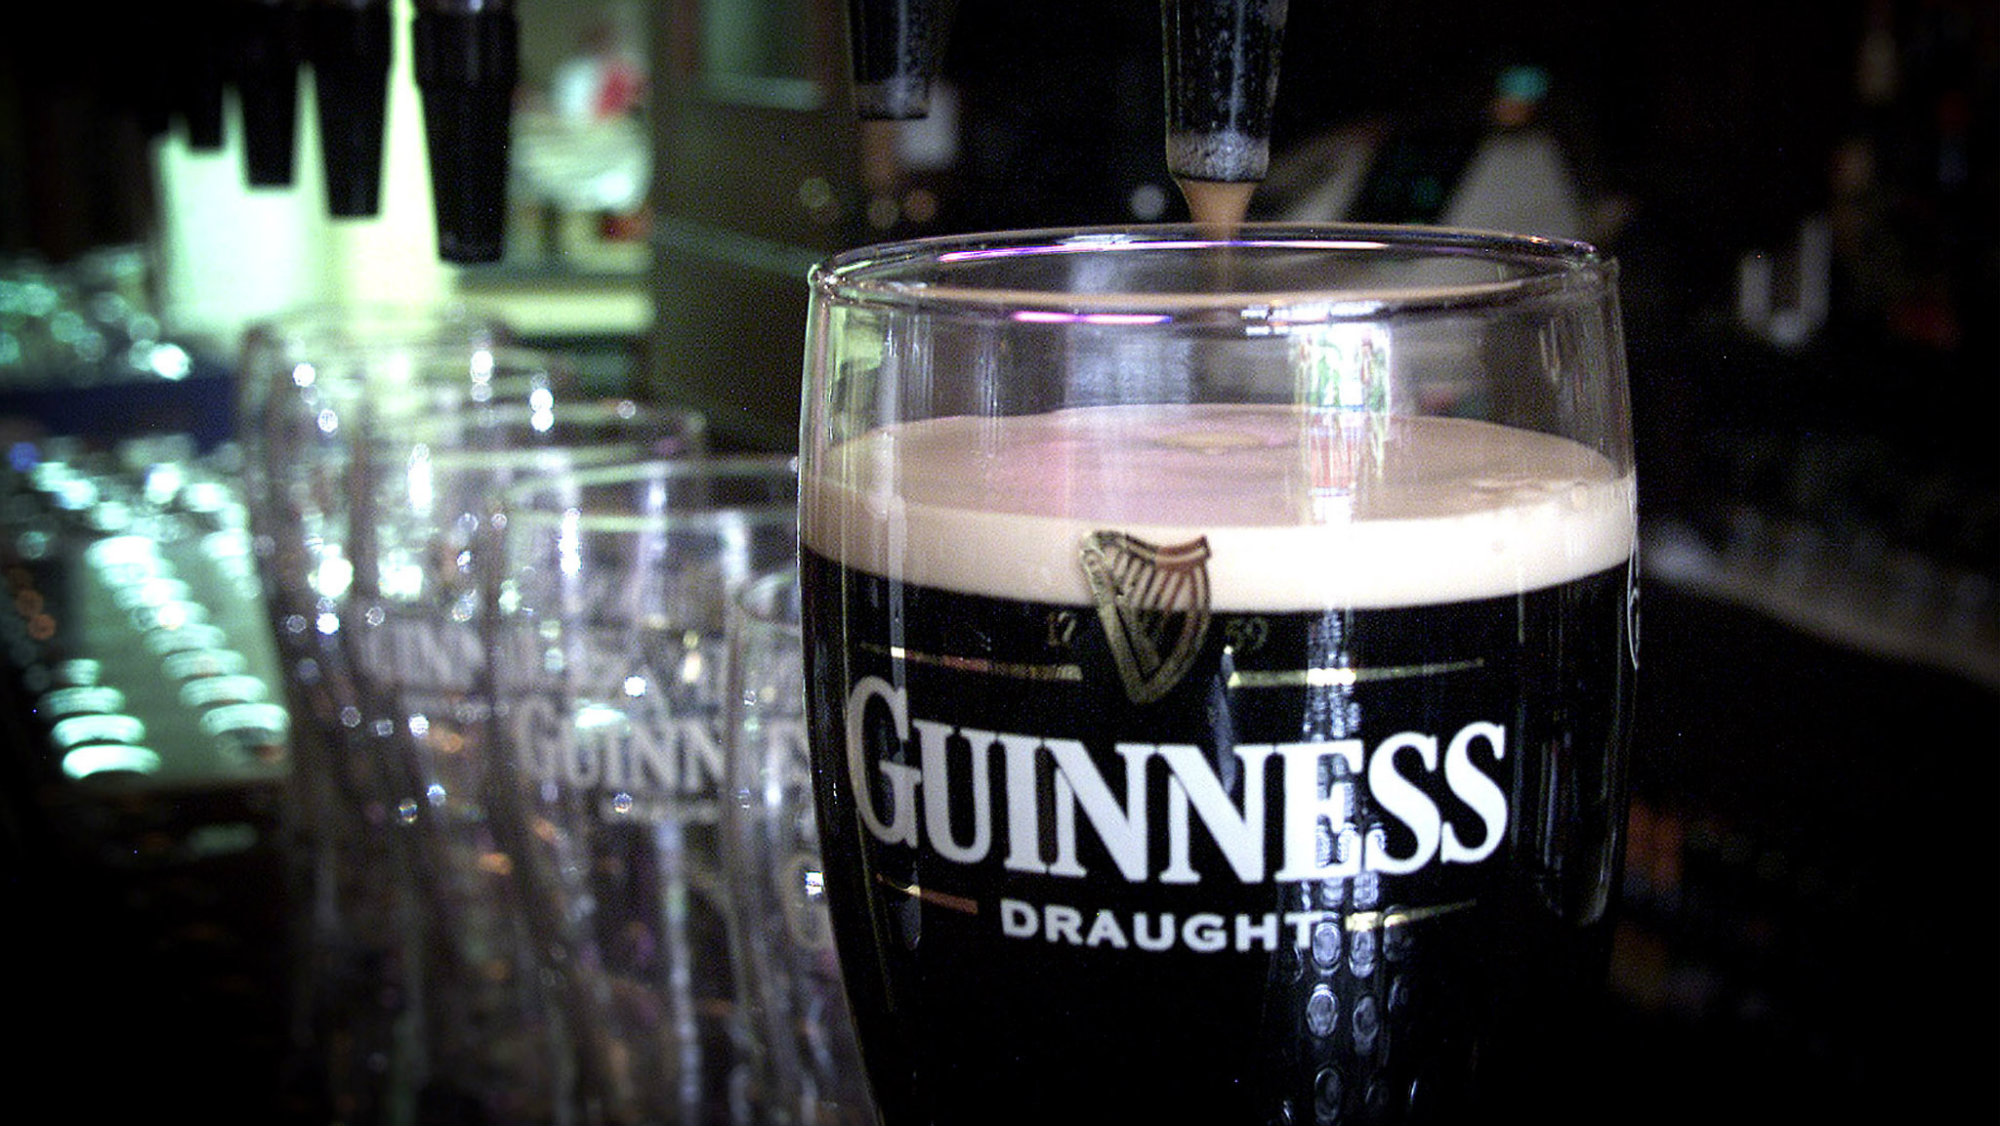 Pint of Guinness next to more glasses